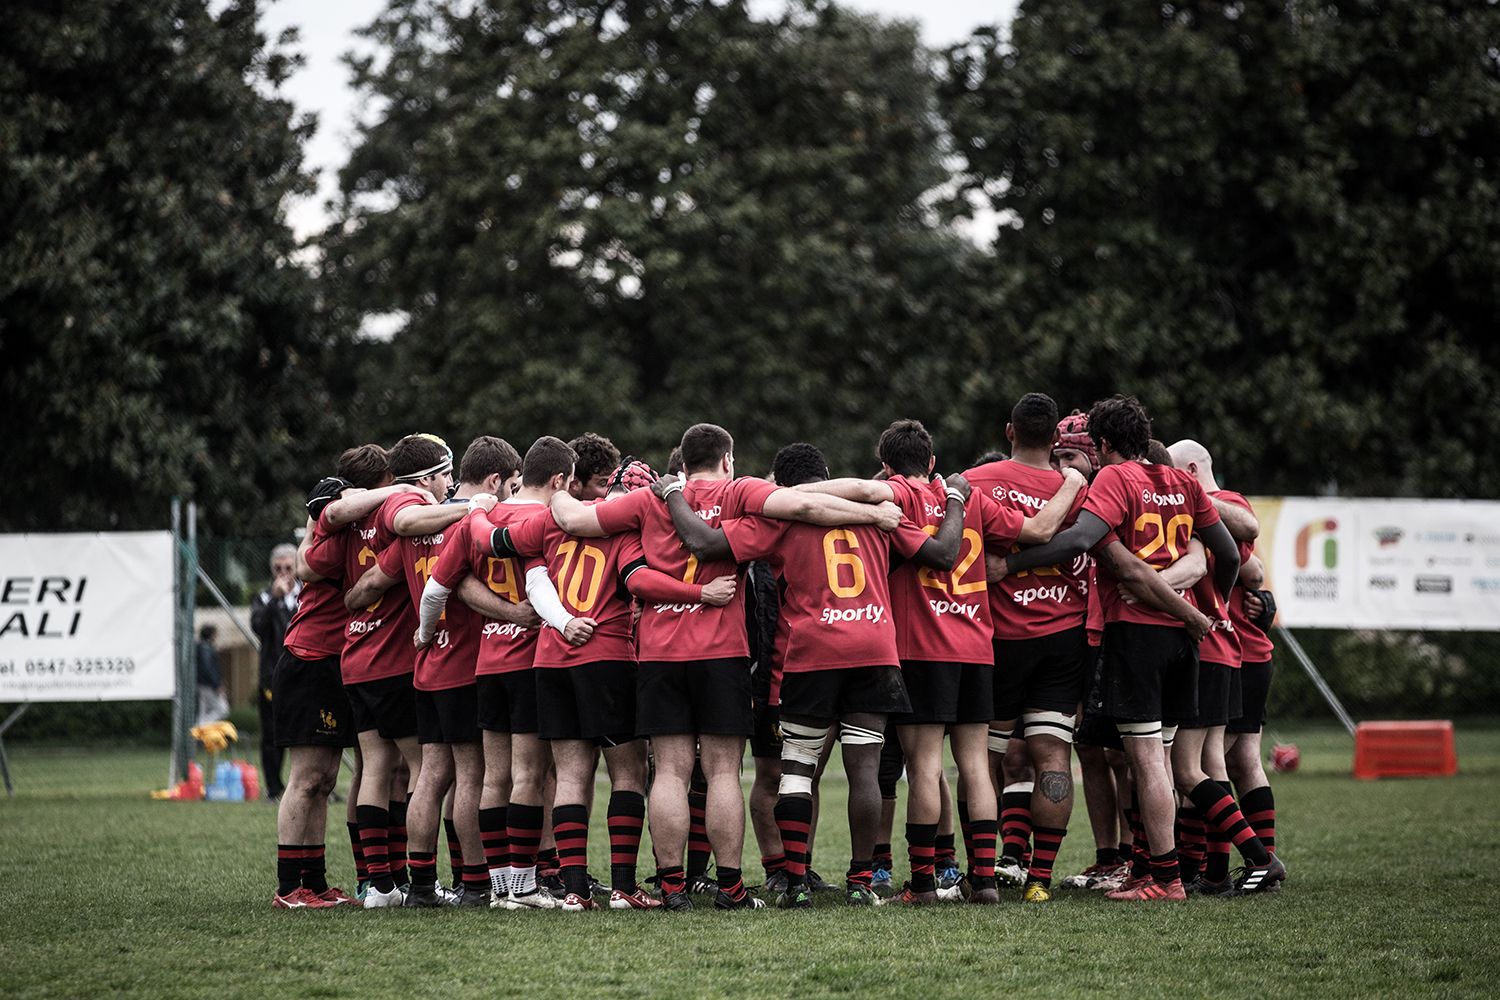 rugby_photograph_44.jpg